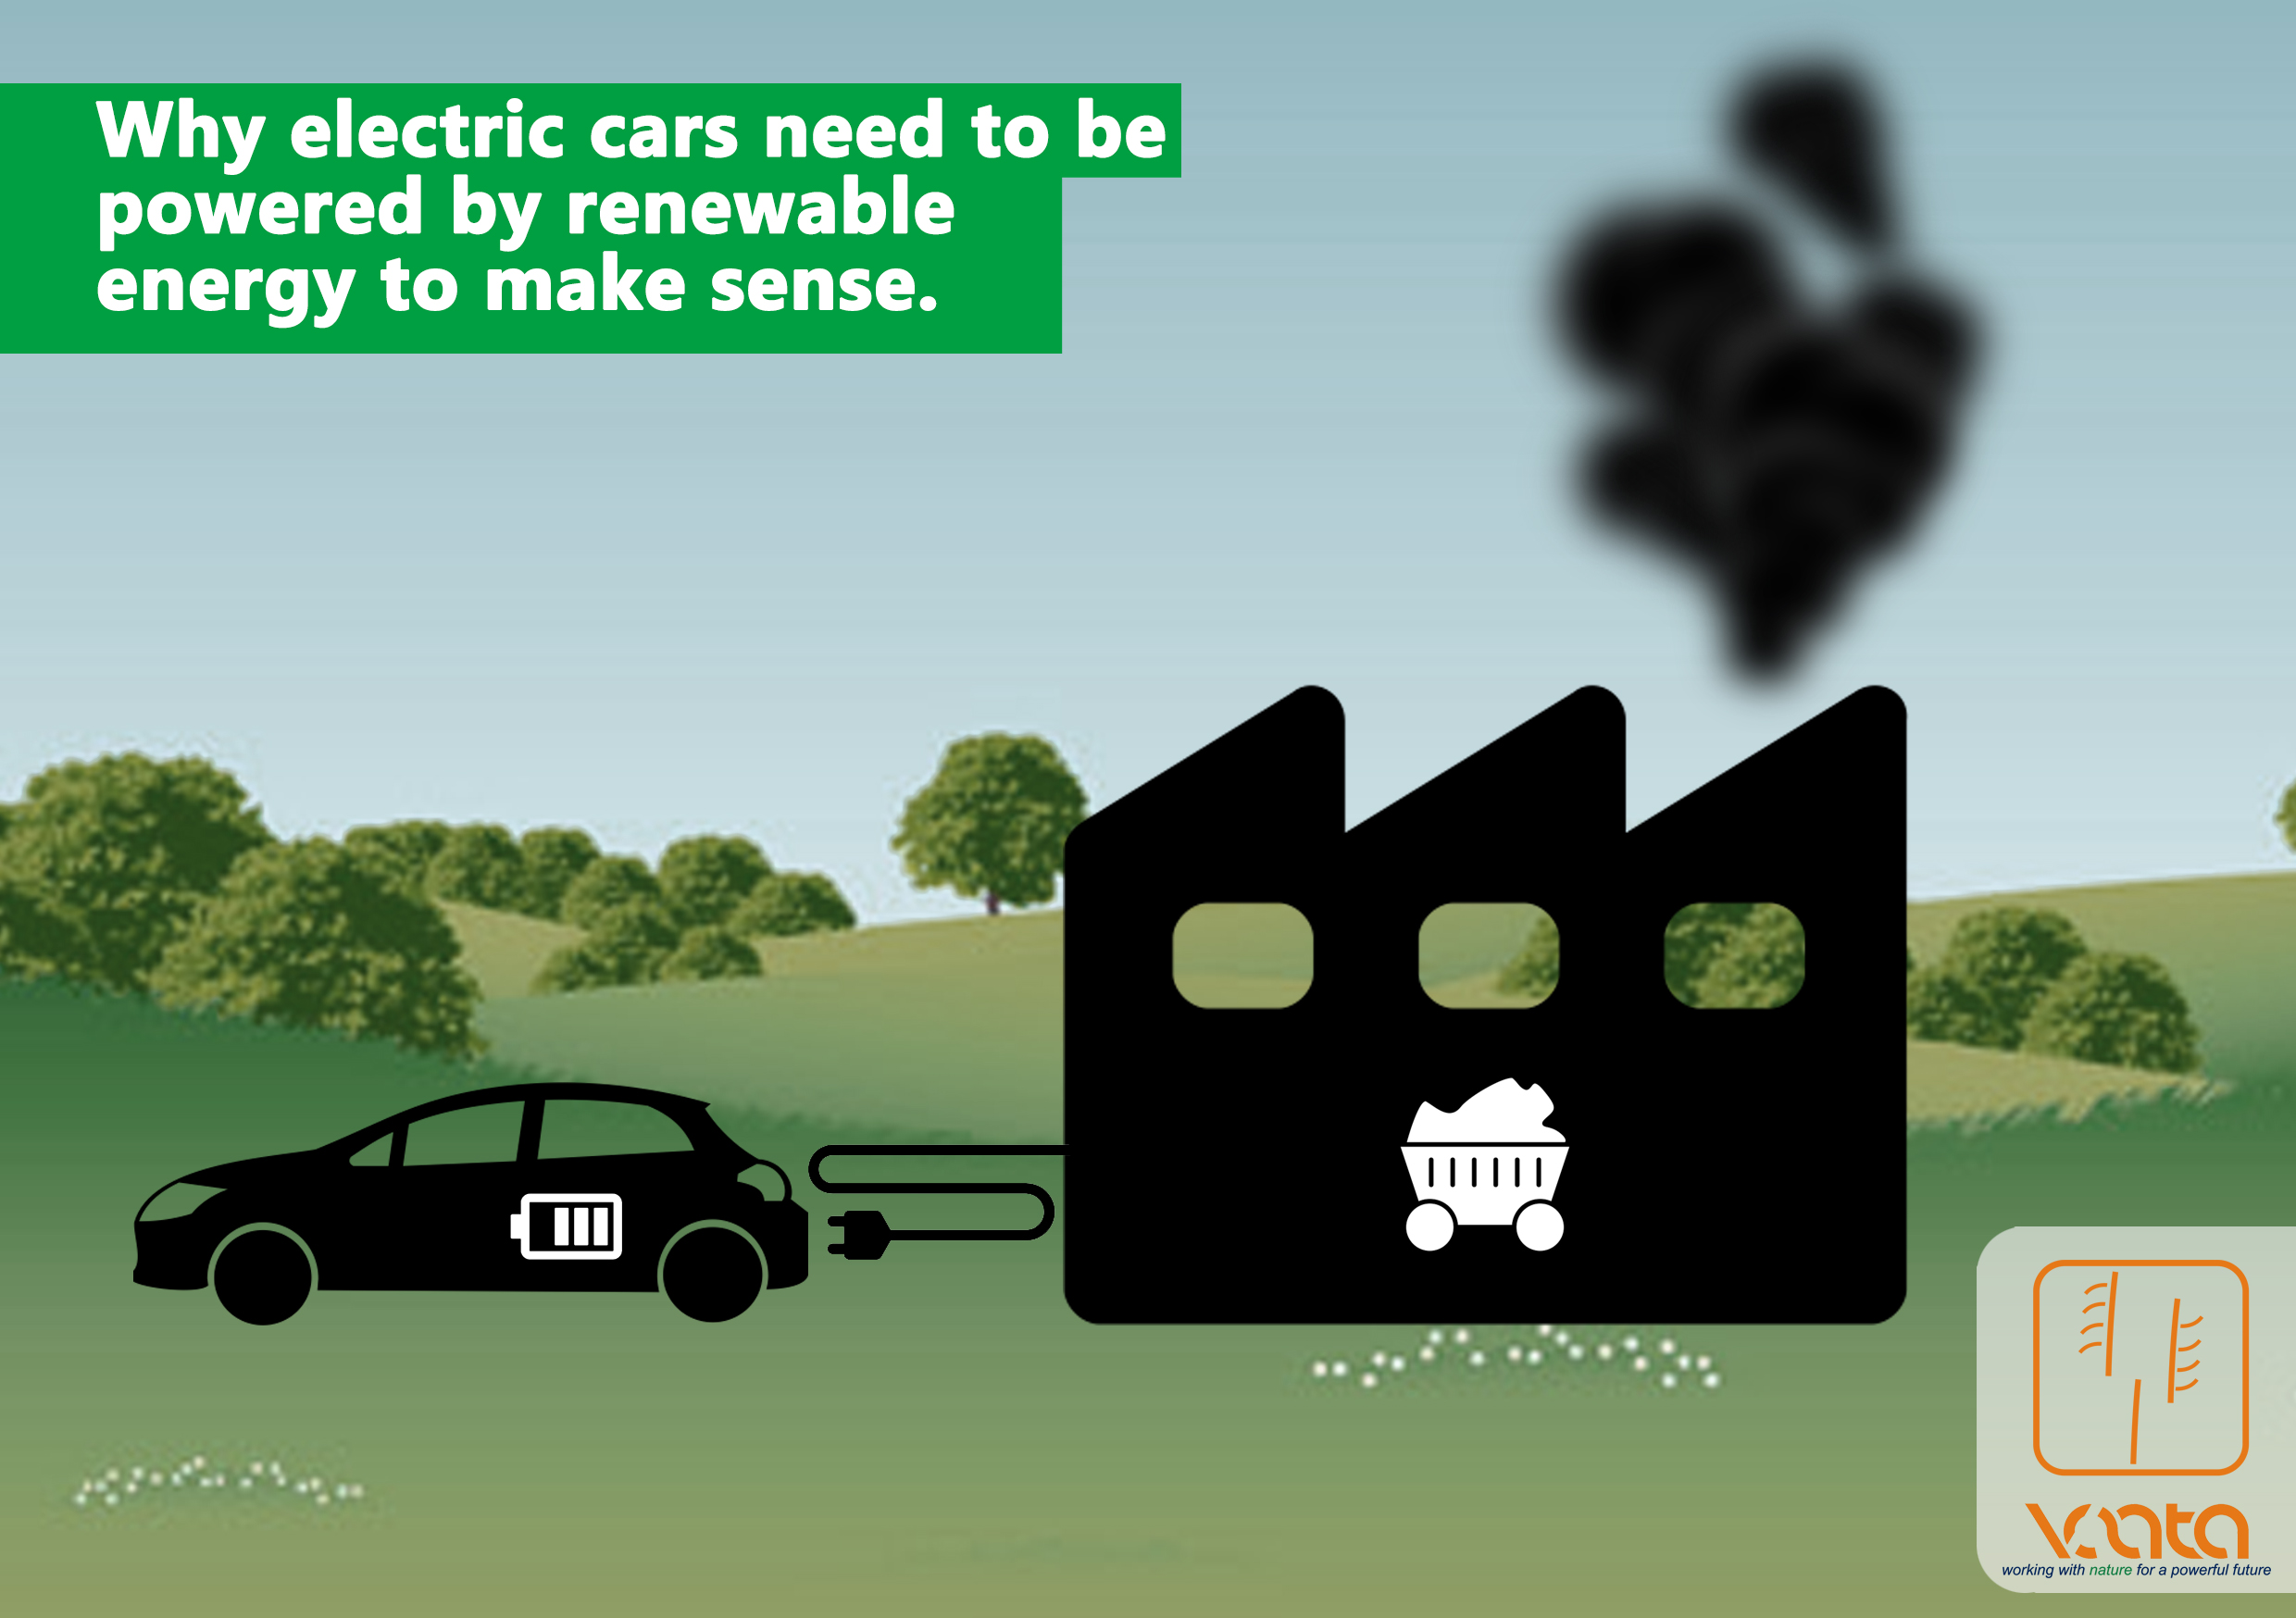 Why electric cars need to be powered by renewable energy to